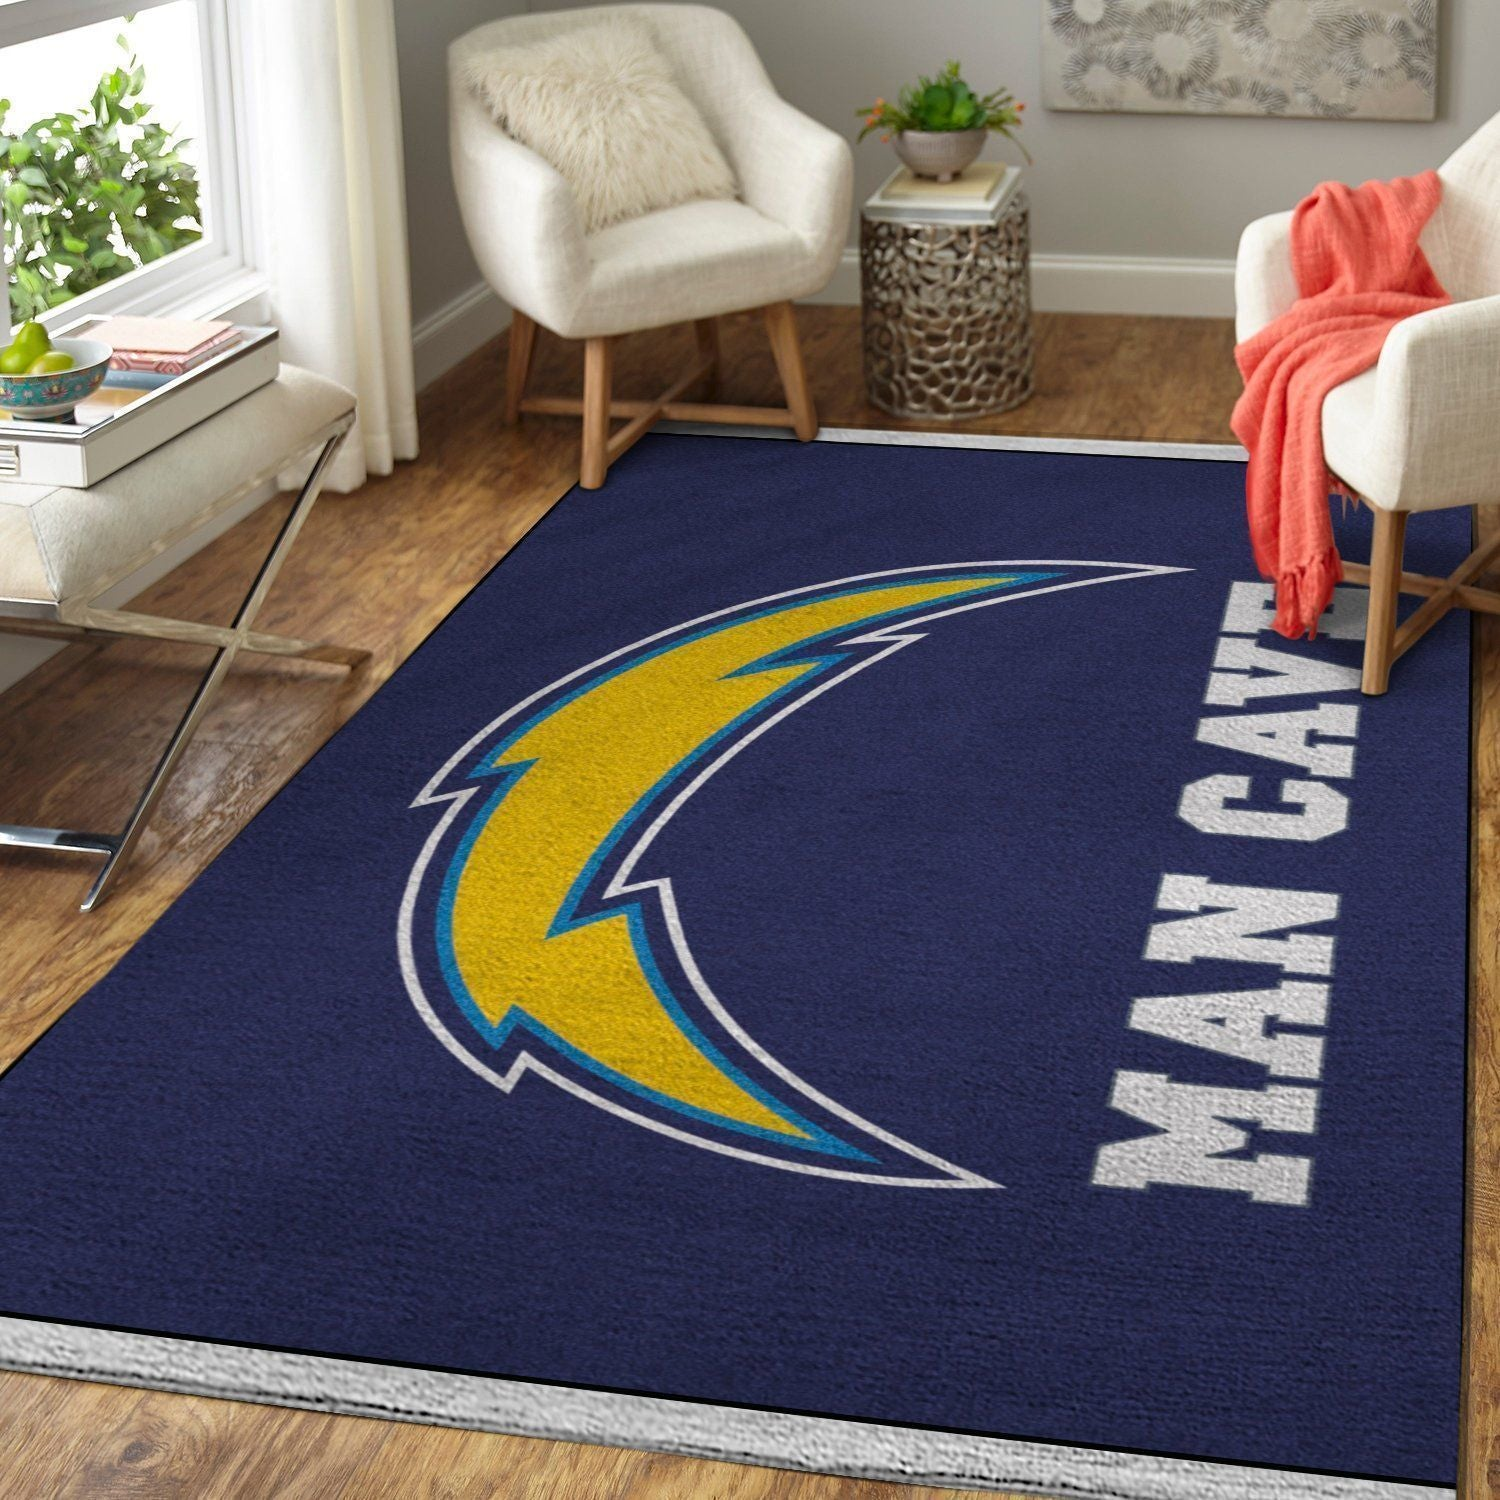 Los Angeles Chargers Logo Man Cave Area Rugs / NFL Football Living Room Carpet Team Logo Custom Floor Home Decor 1910292